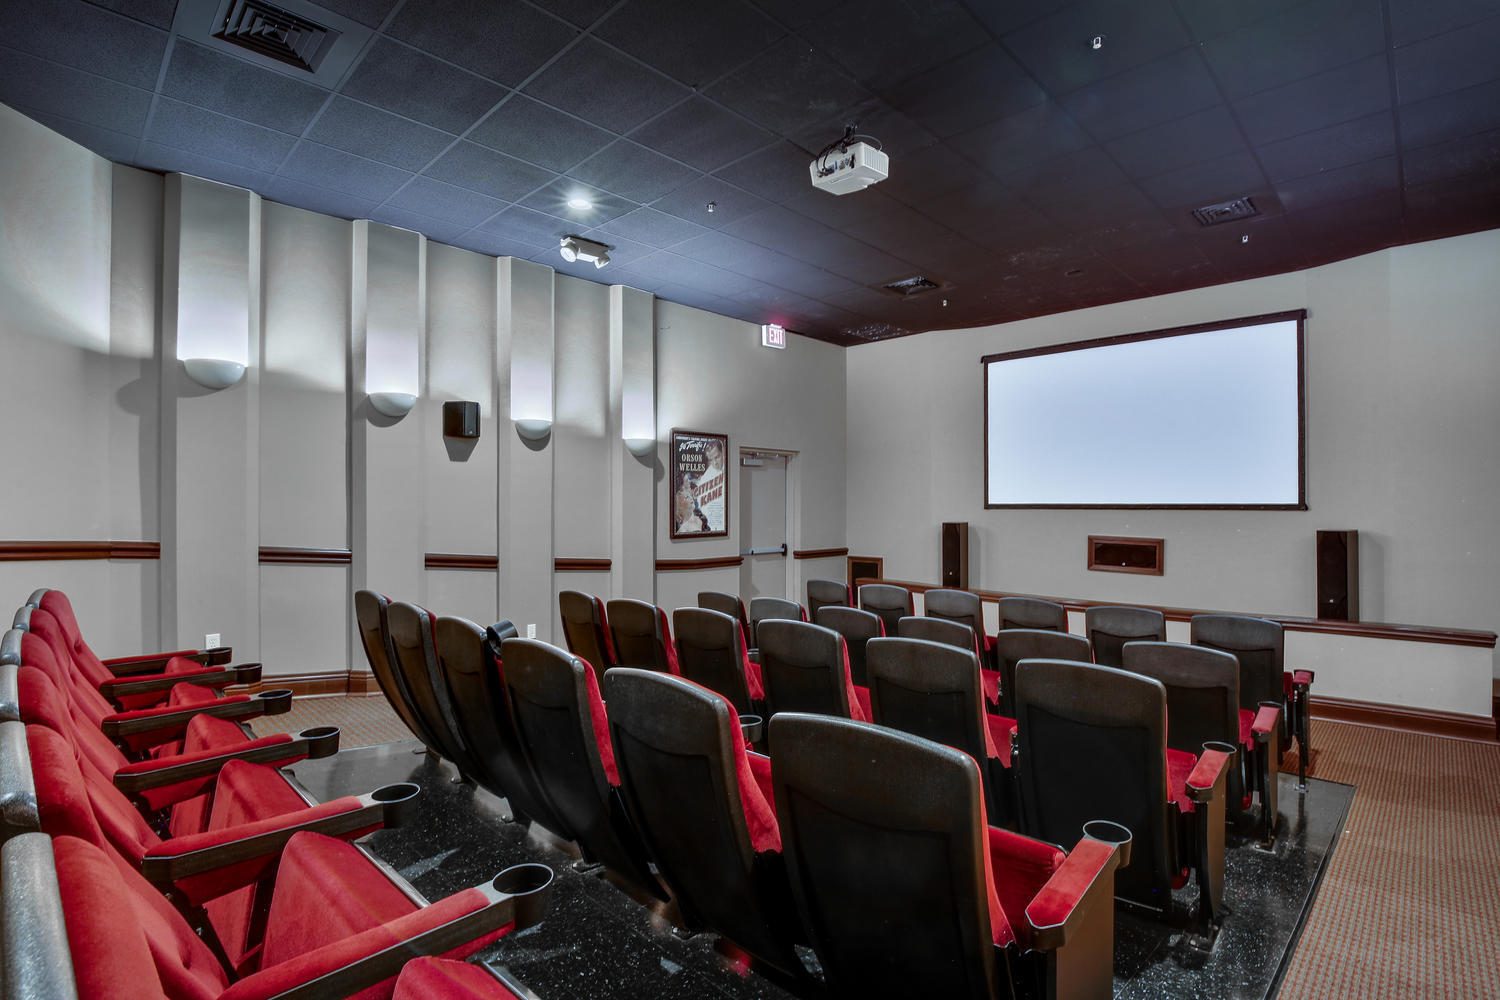 picture it sold  mls approved theatre  -